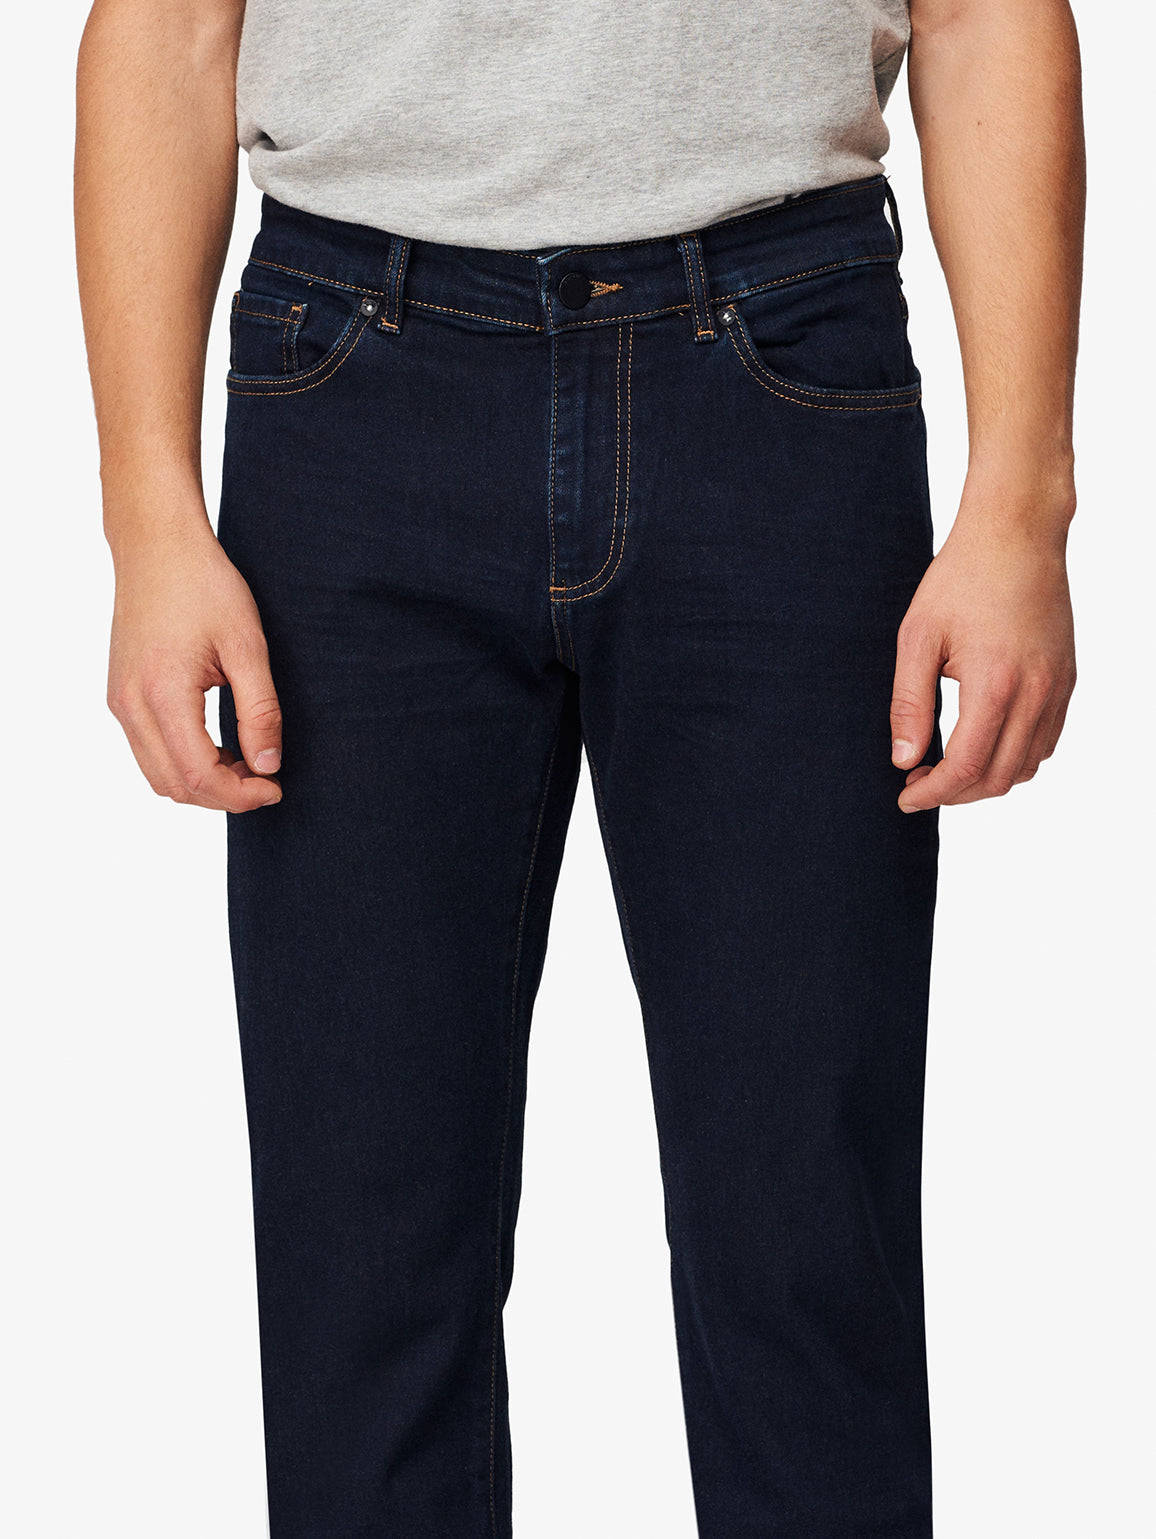 Men - Dark Blue Straight Denim - Avery Straight Prime - DL1961